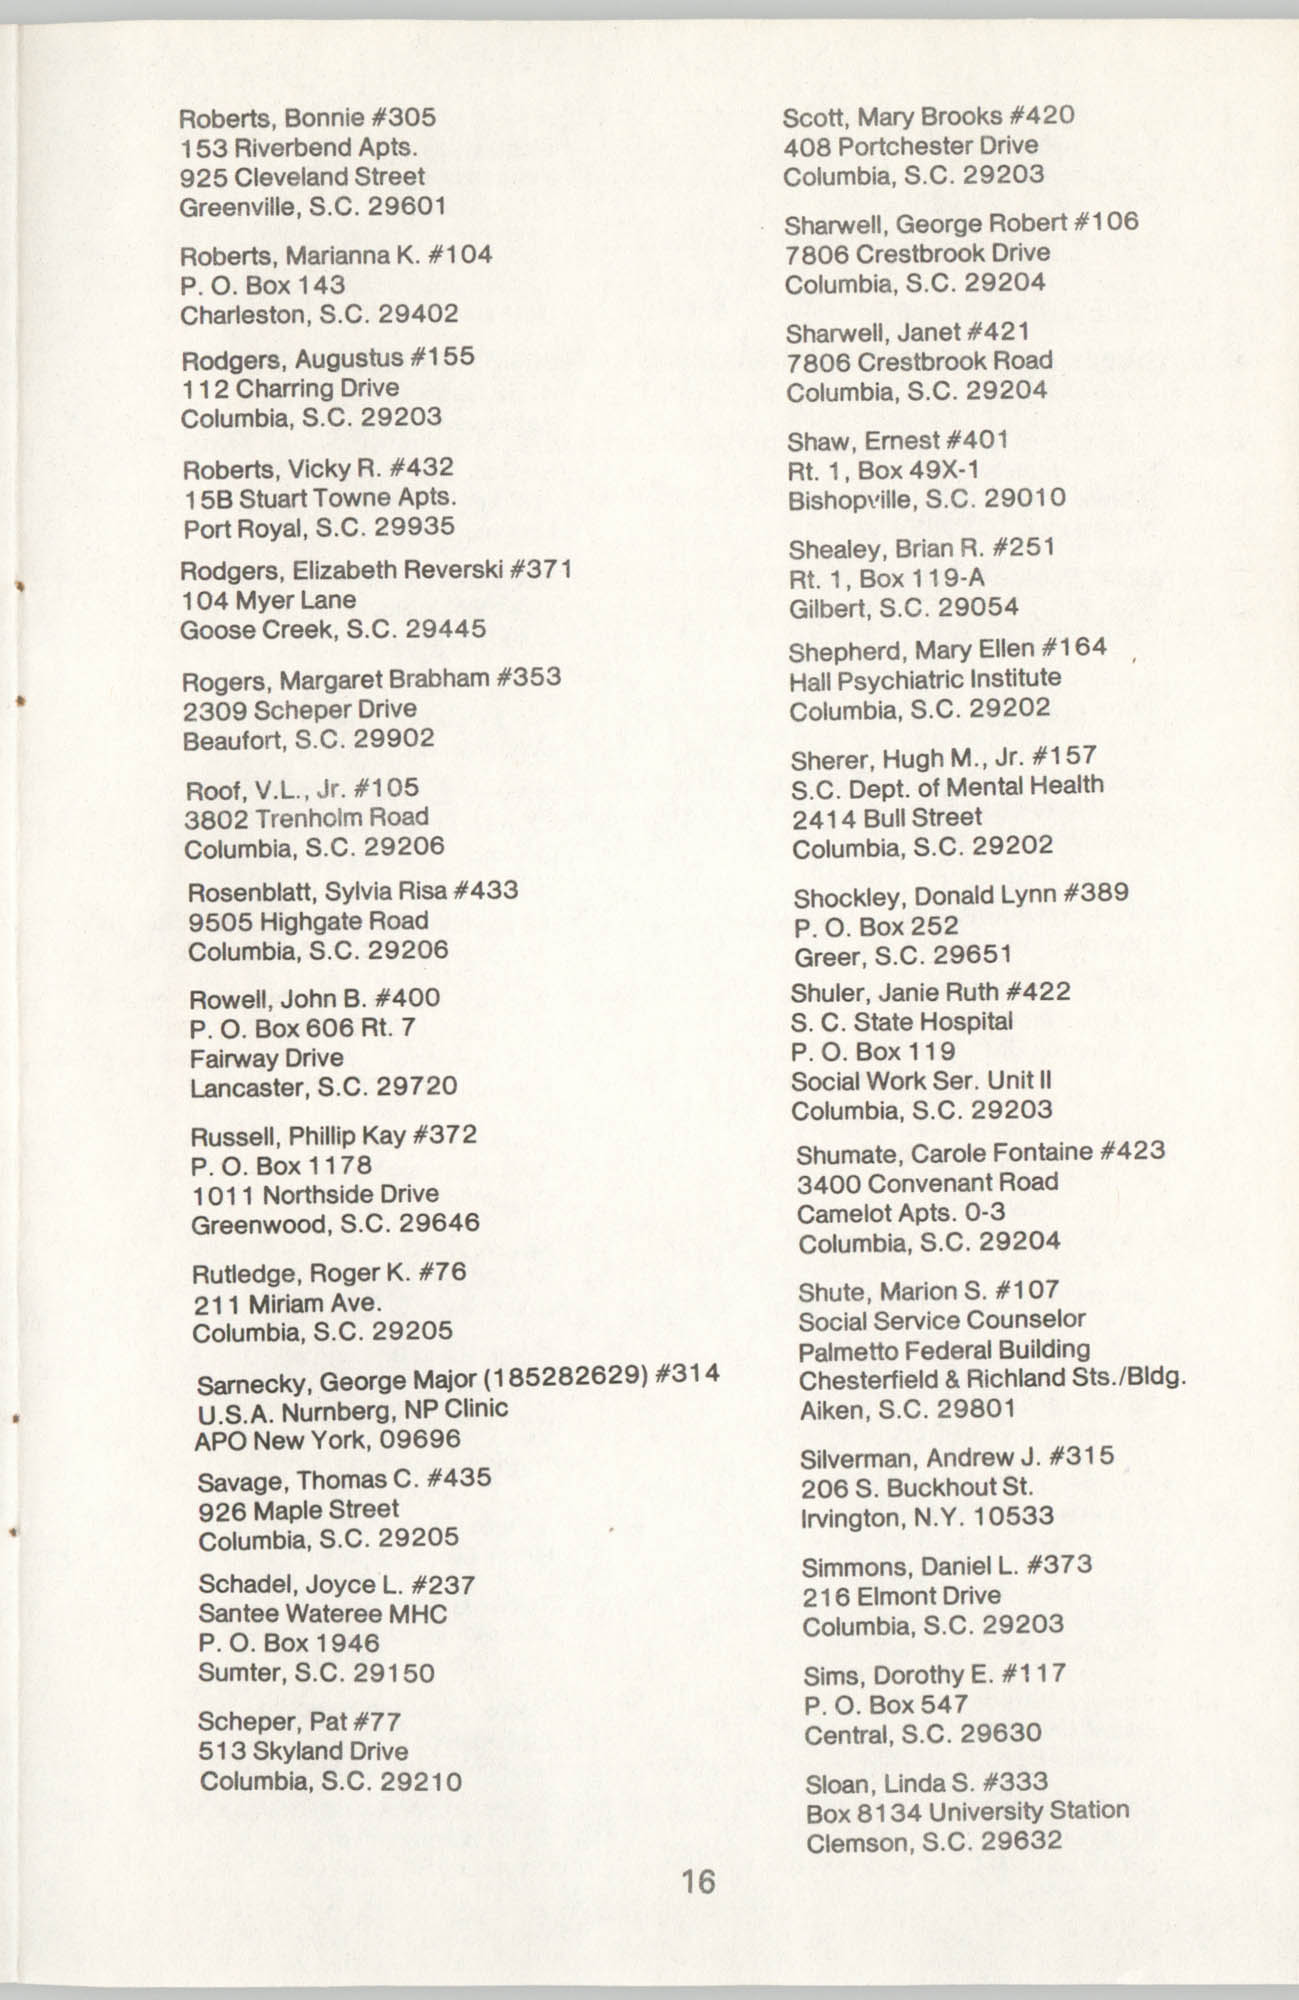 State of South Carolina Directory of Registered Social Workers, 1977, Page 16